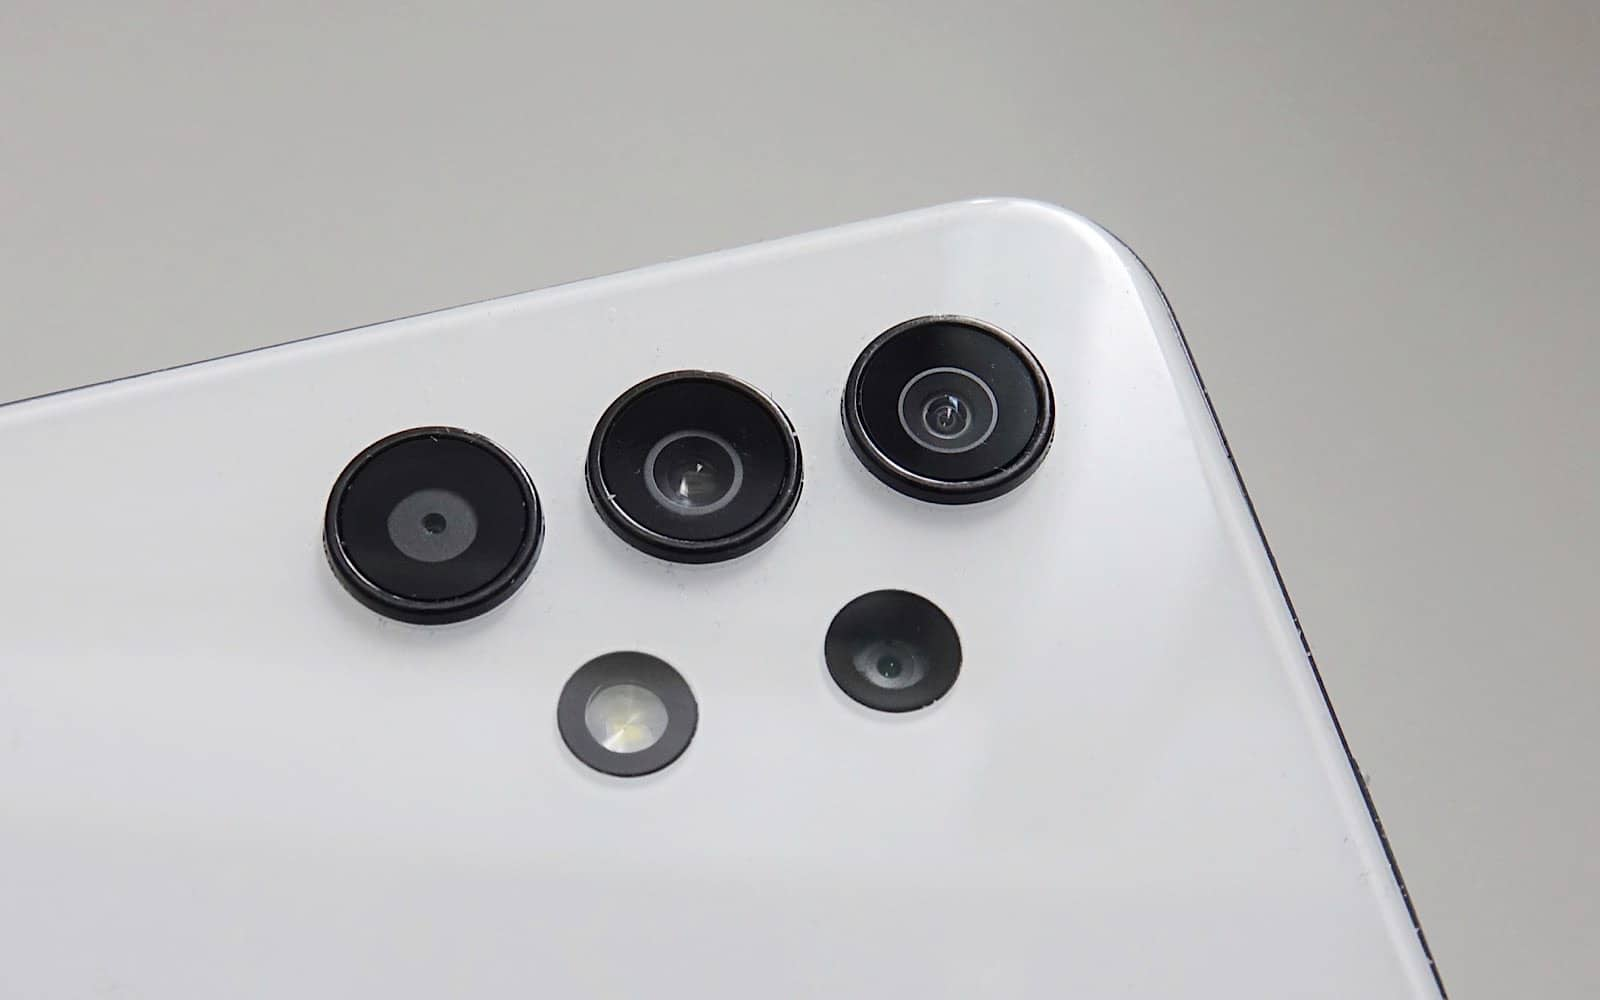 The cameras on the Galaxy A32 5G